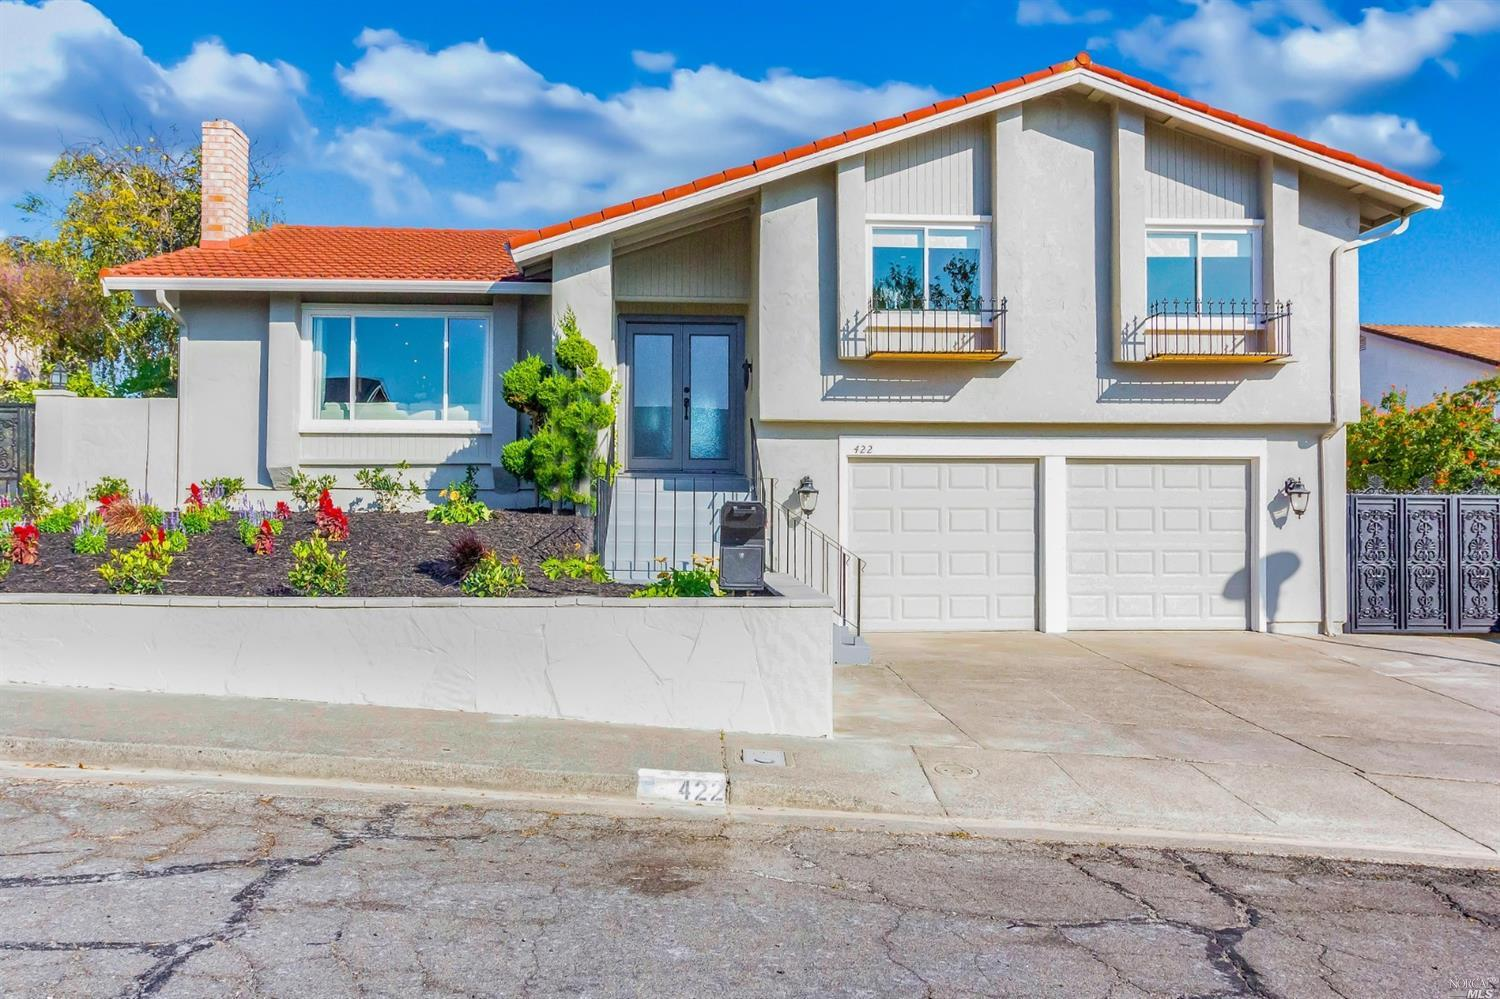 Photo of 422 York Drive, Benicia, CA 94510